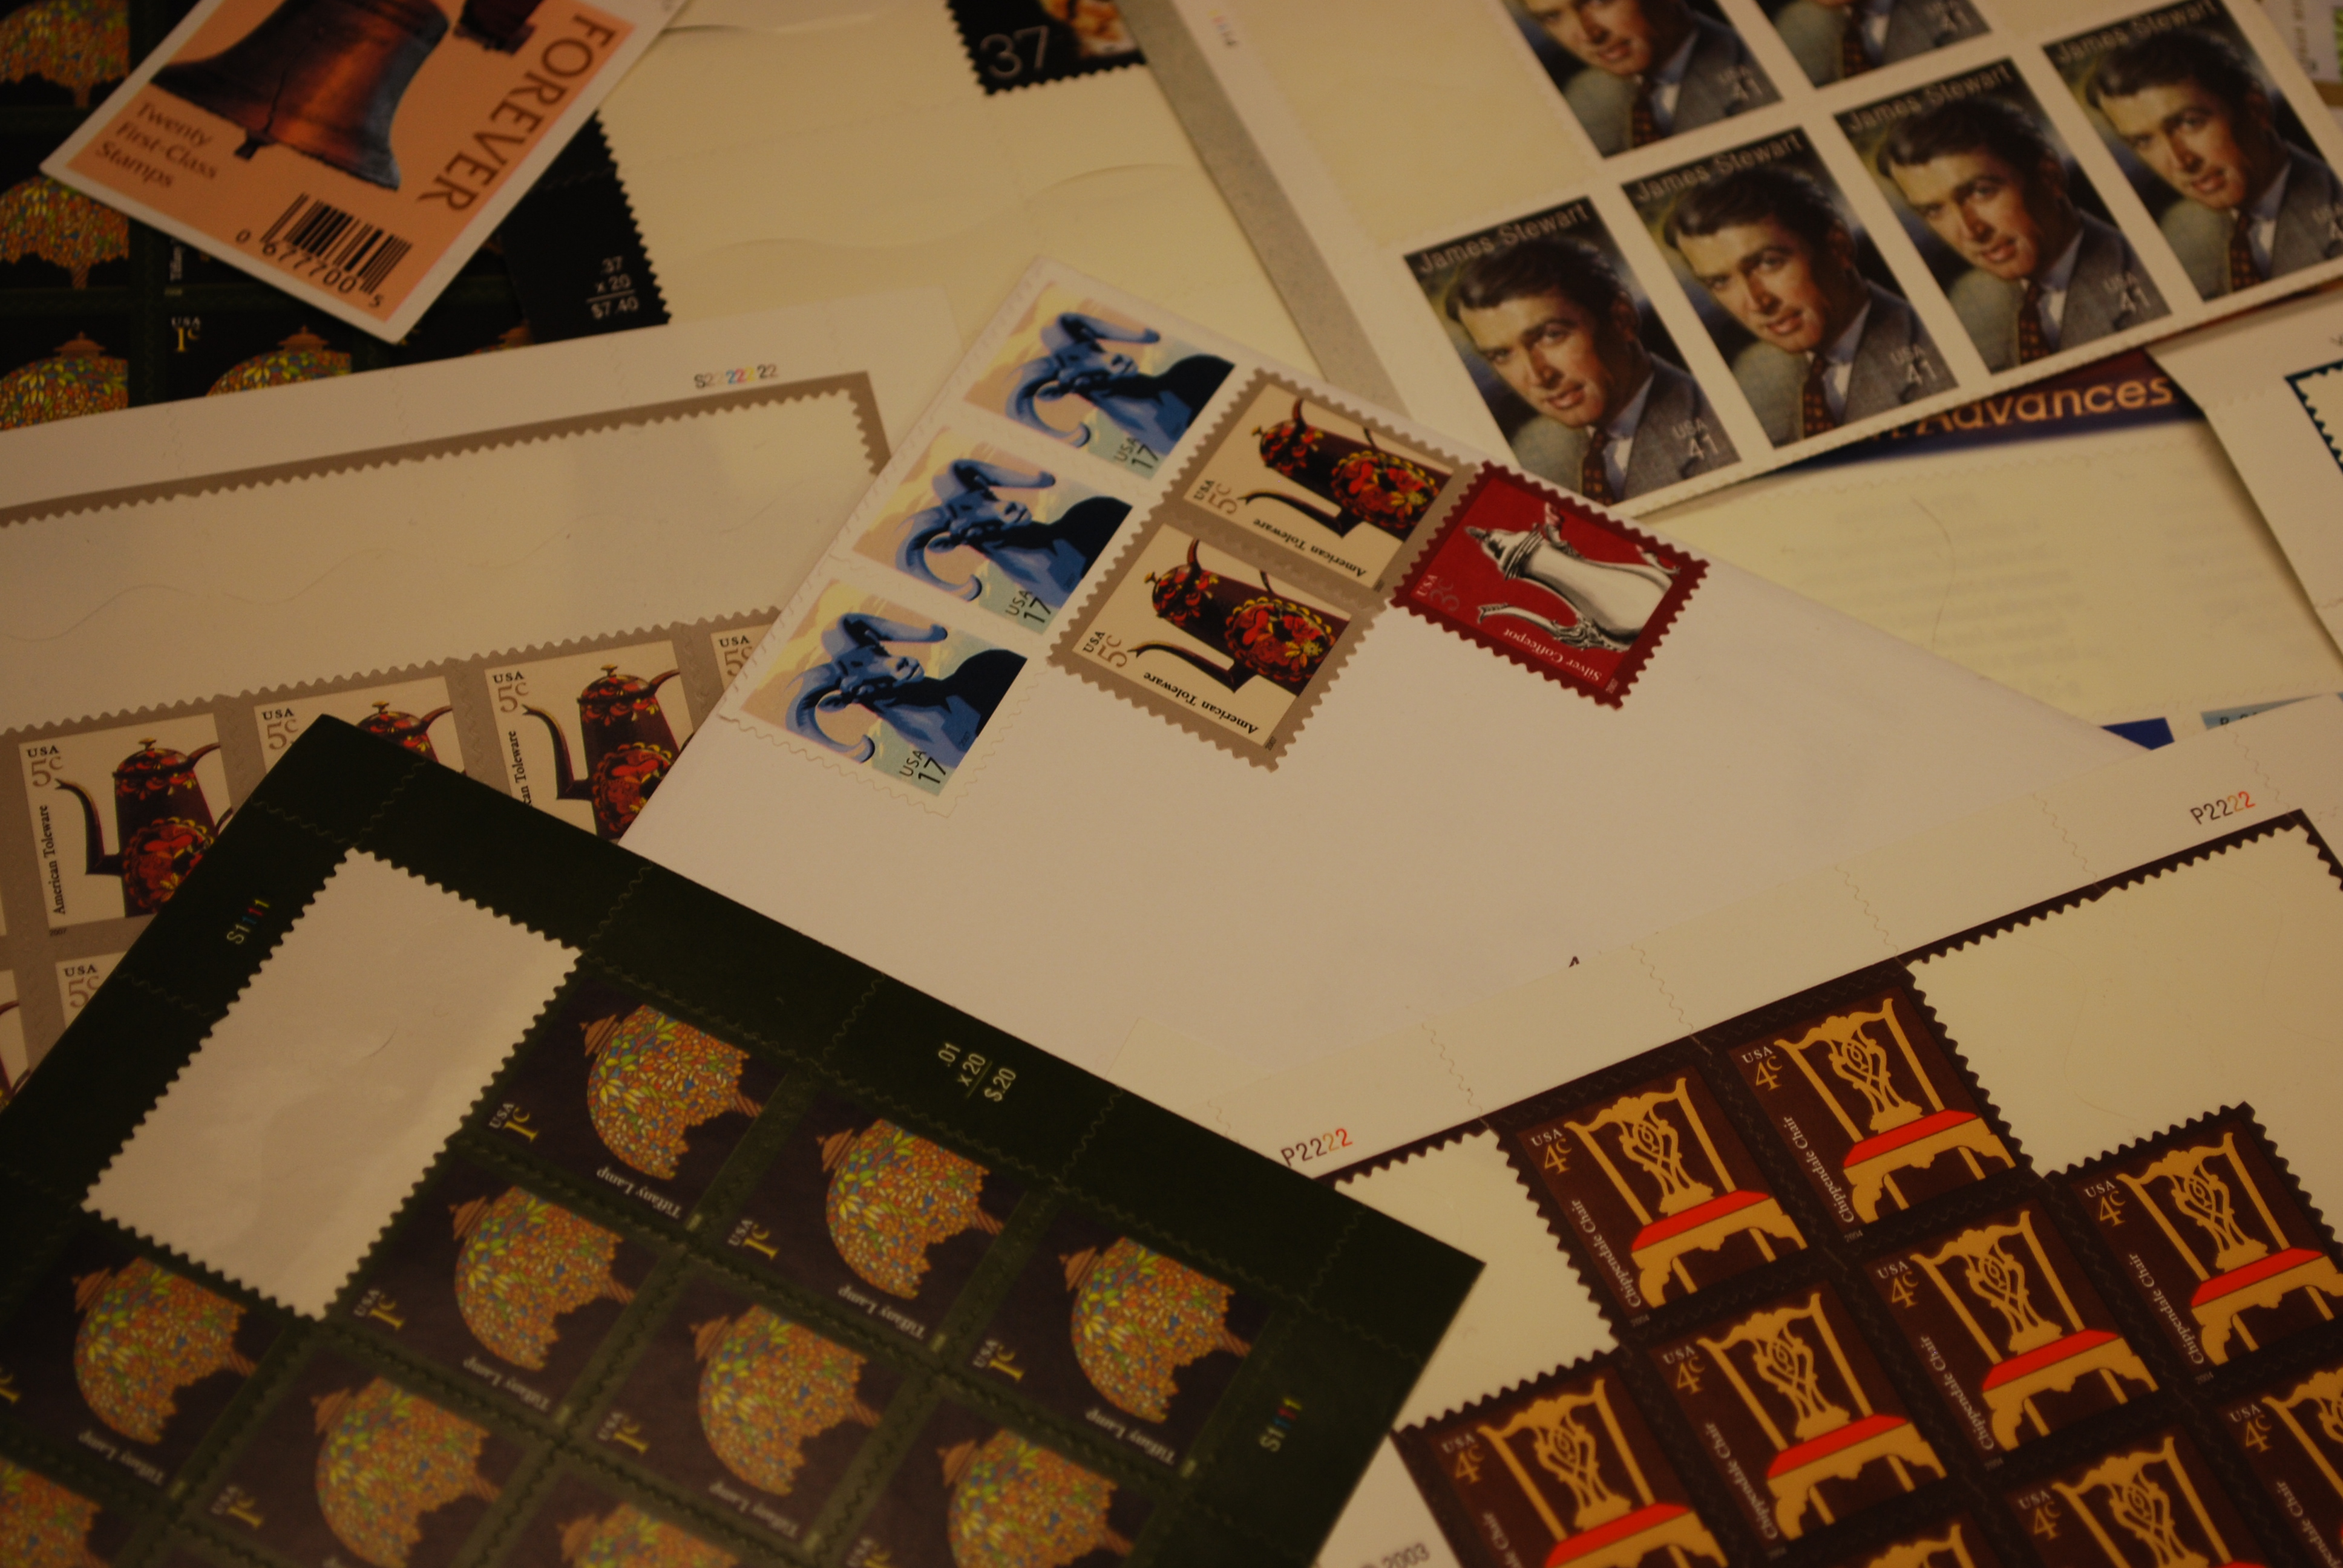 HOW MUCH IS A FOREVER STAMP RIGHT NOW